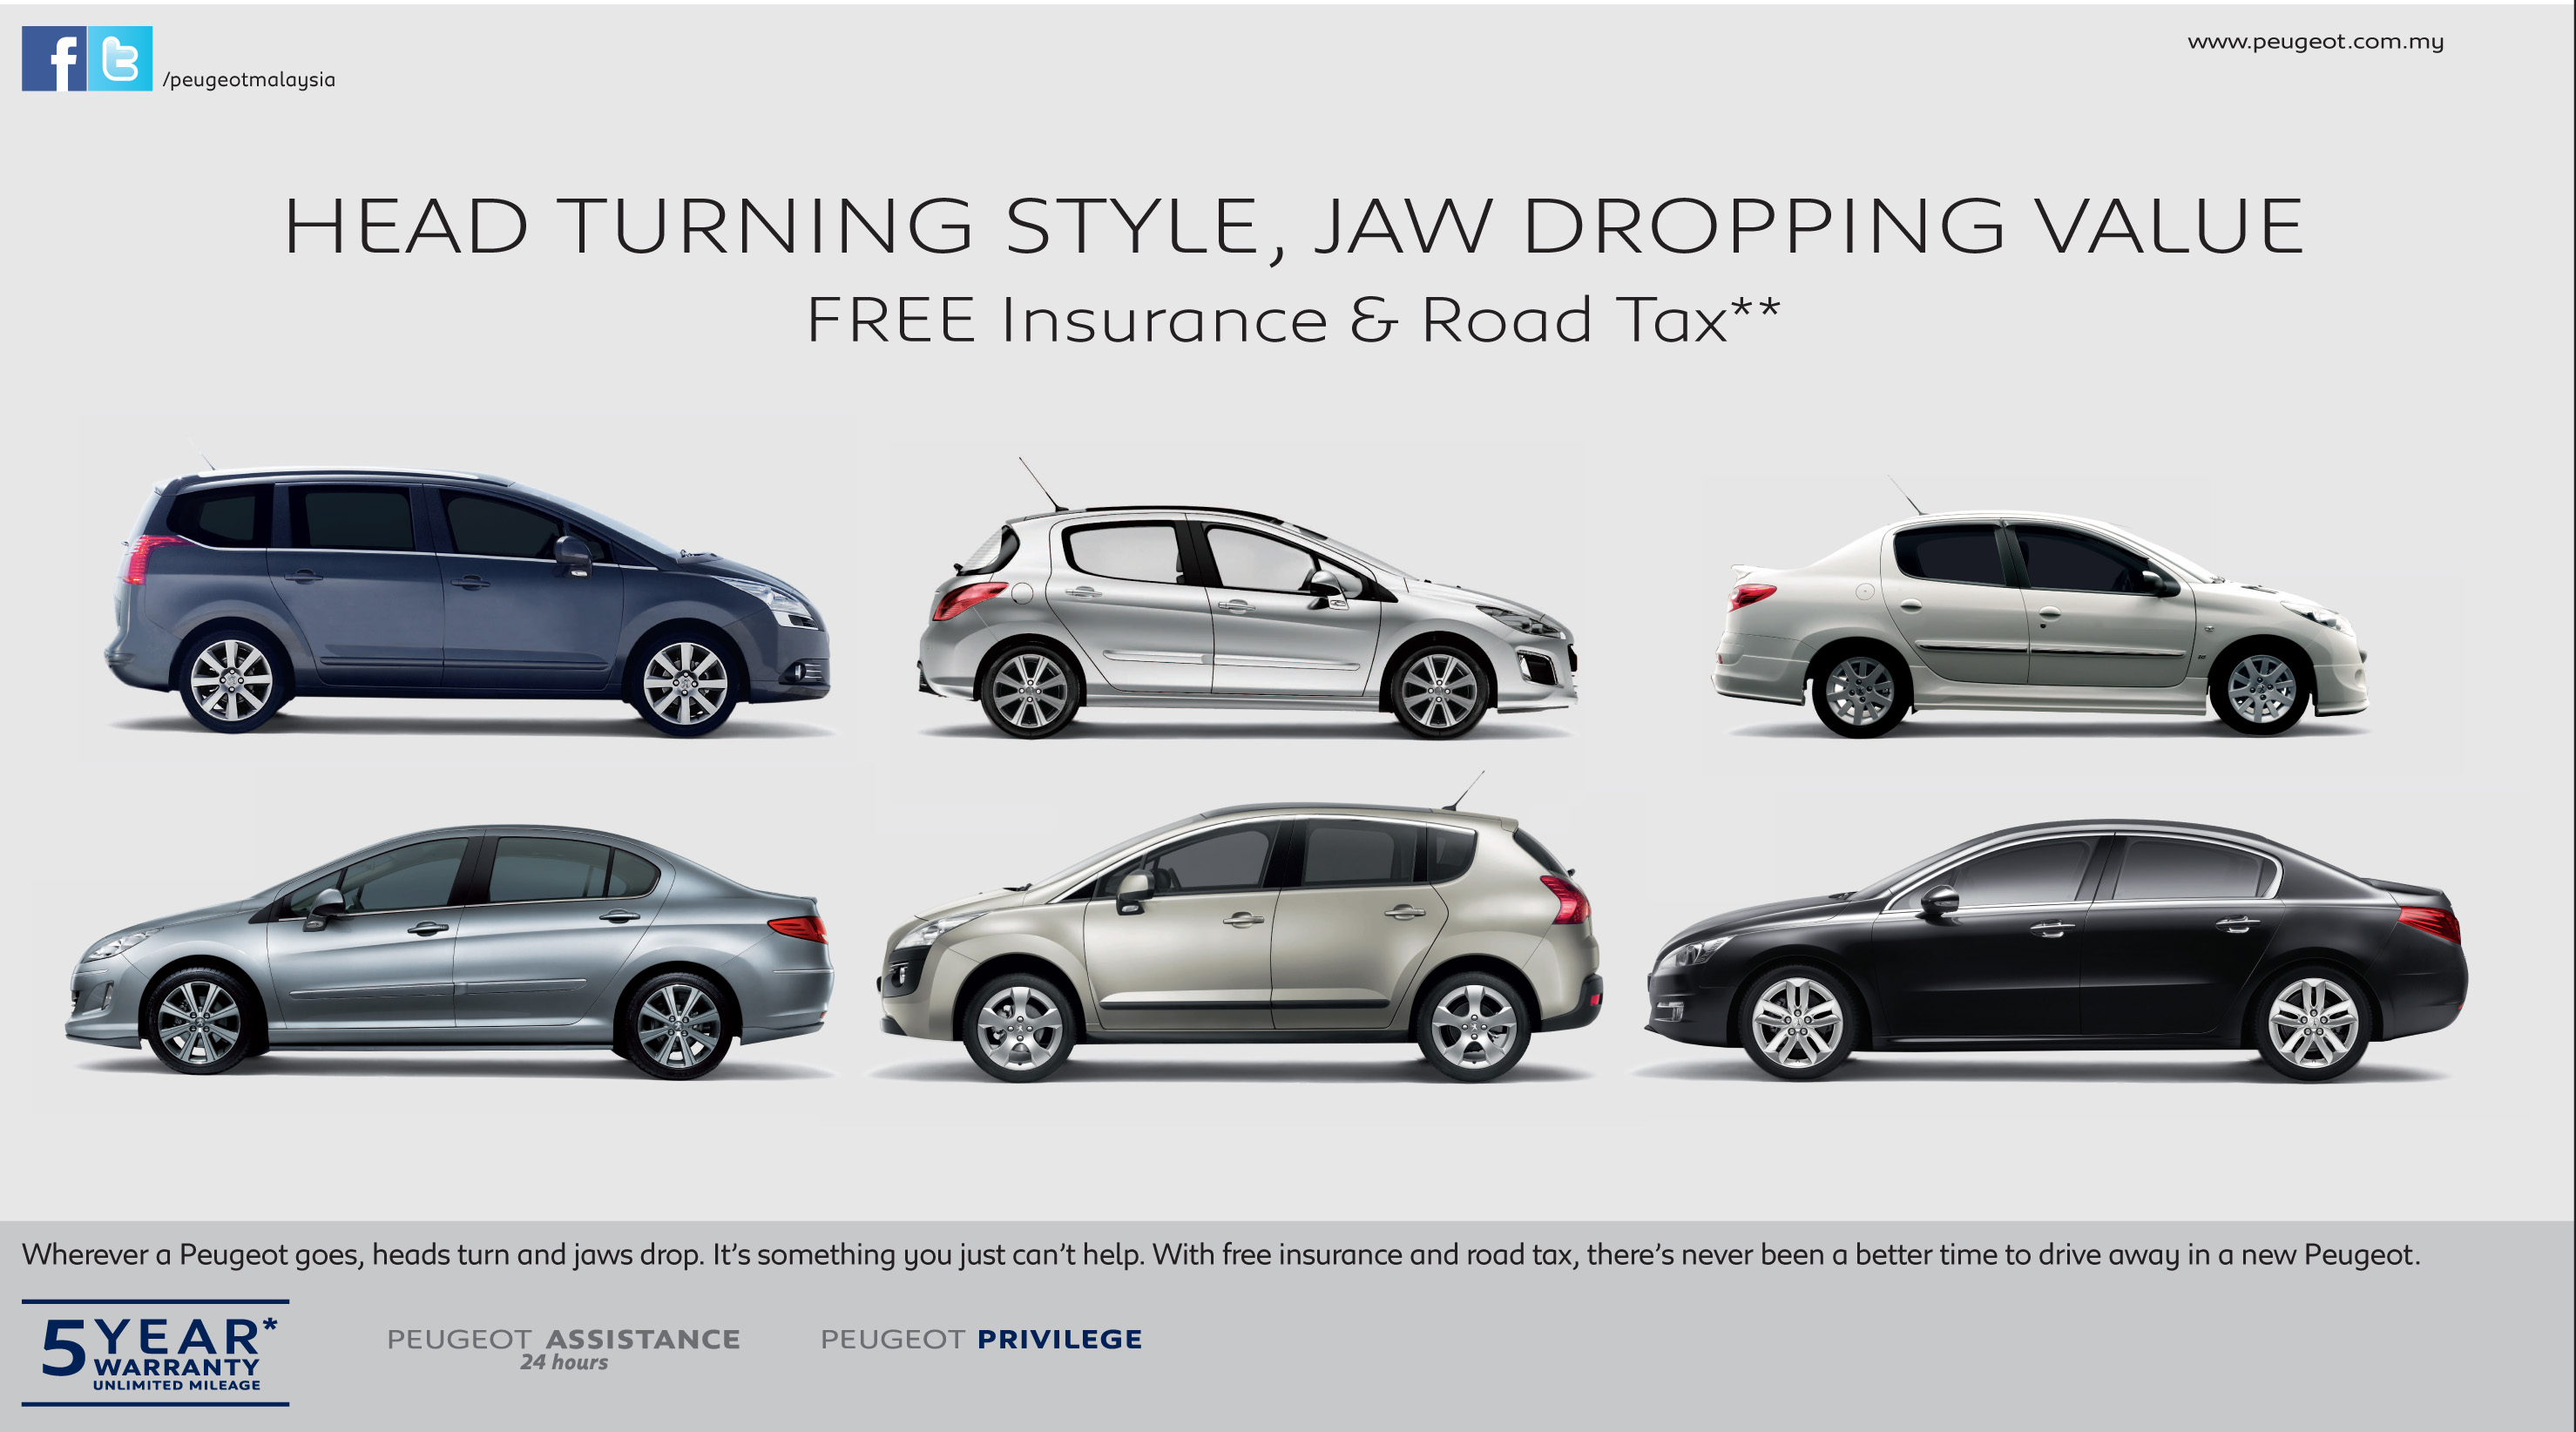 Peugeot Offers Free Road Tax and Insurance For One Year - wemotor.com